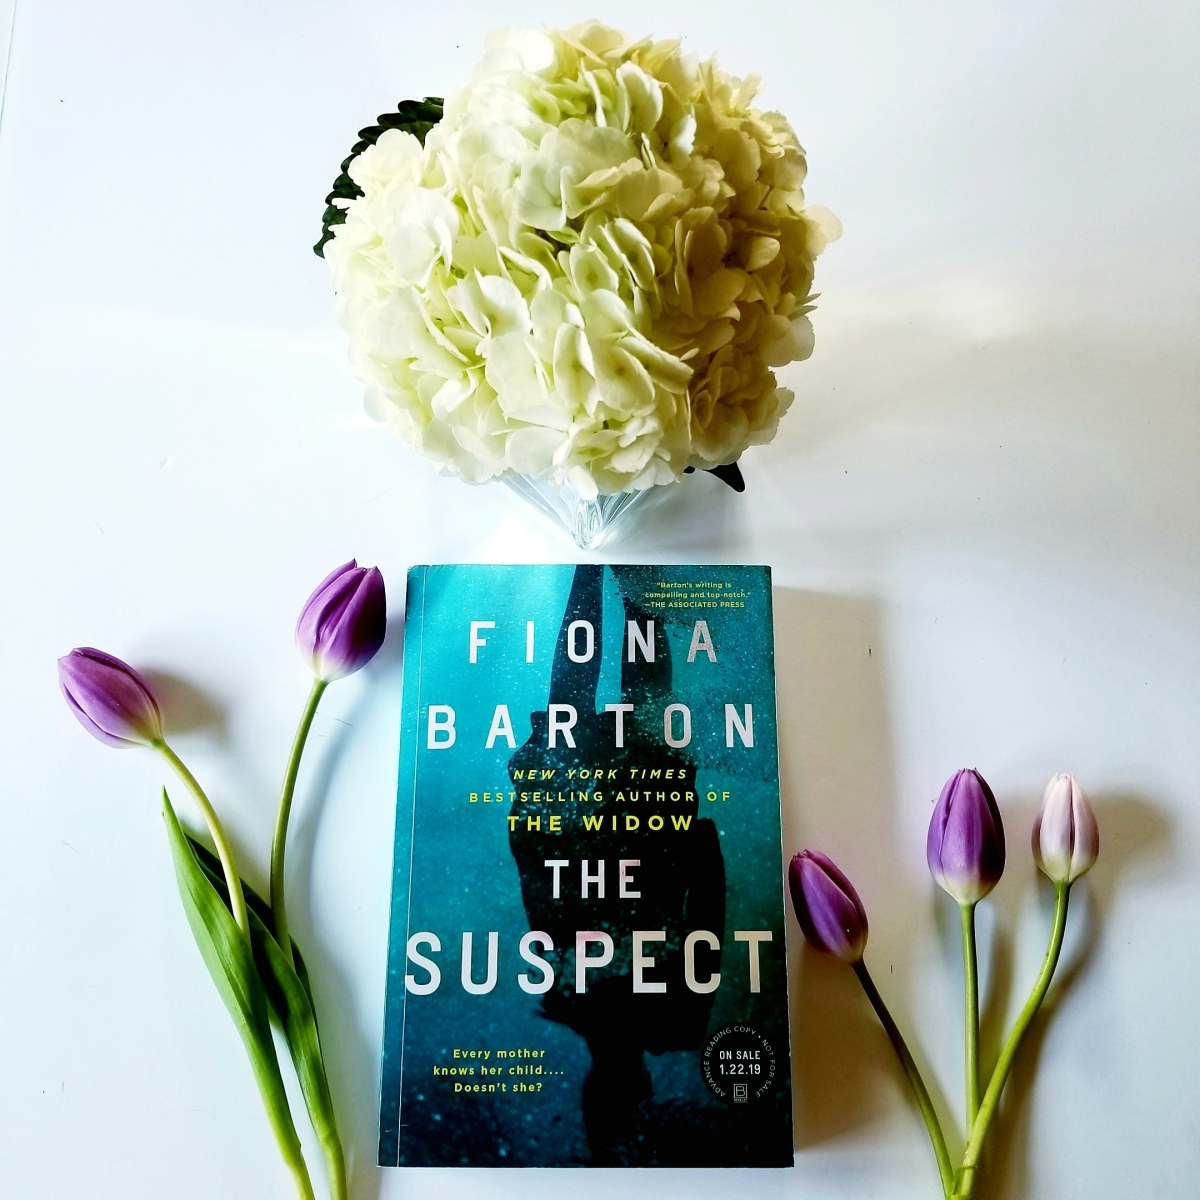 The Suspect by Fiona Barton #bookreview #tarheelreader #thrthesuspect @figbarton @berkleypub #thesuspect #bookbestiessuspect